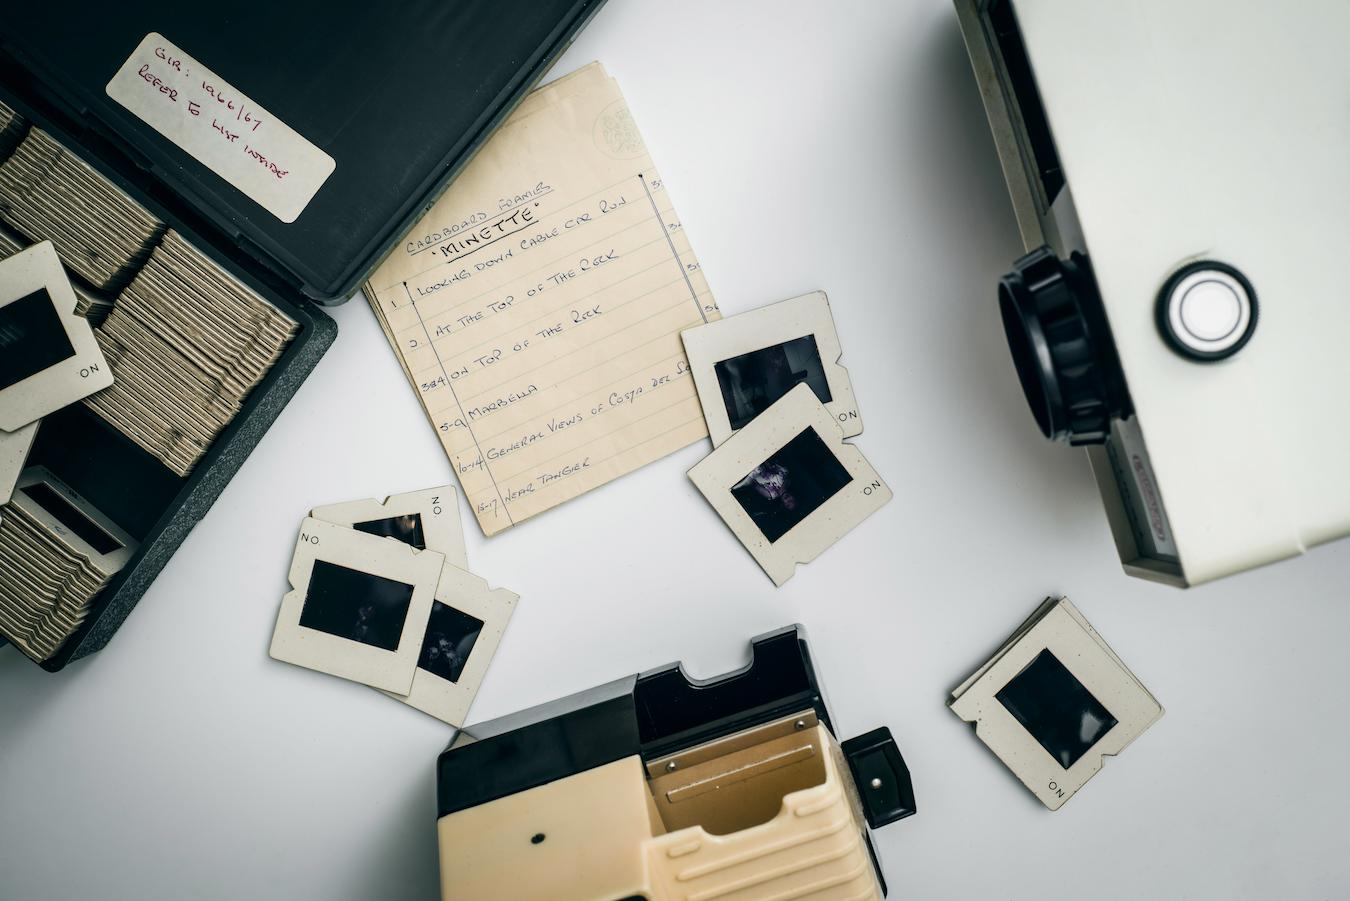 How to convert 8mm film to digital